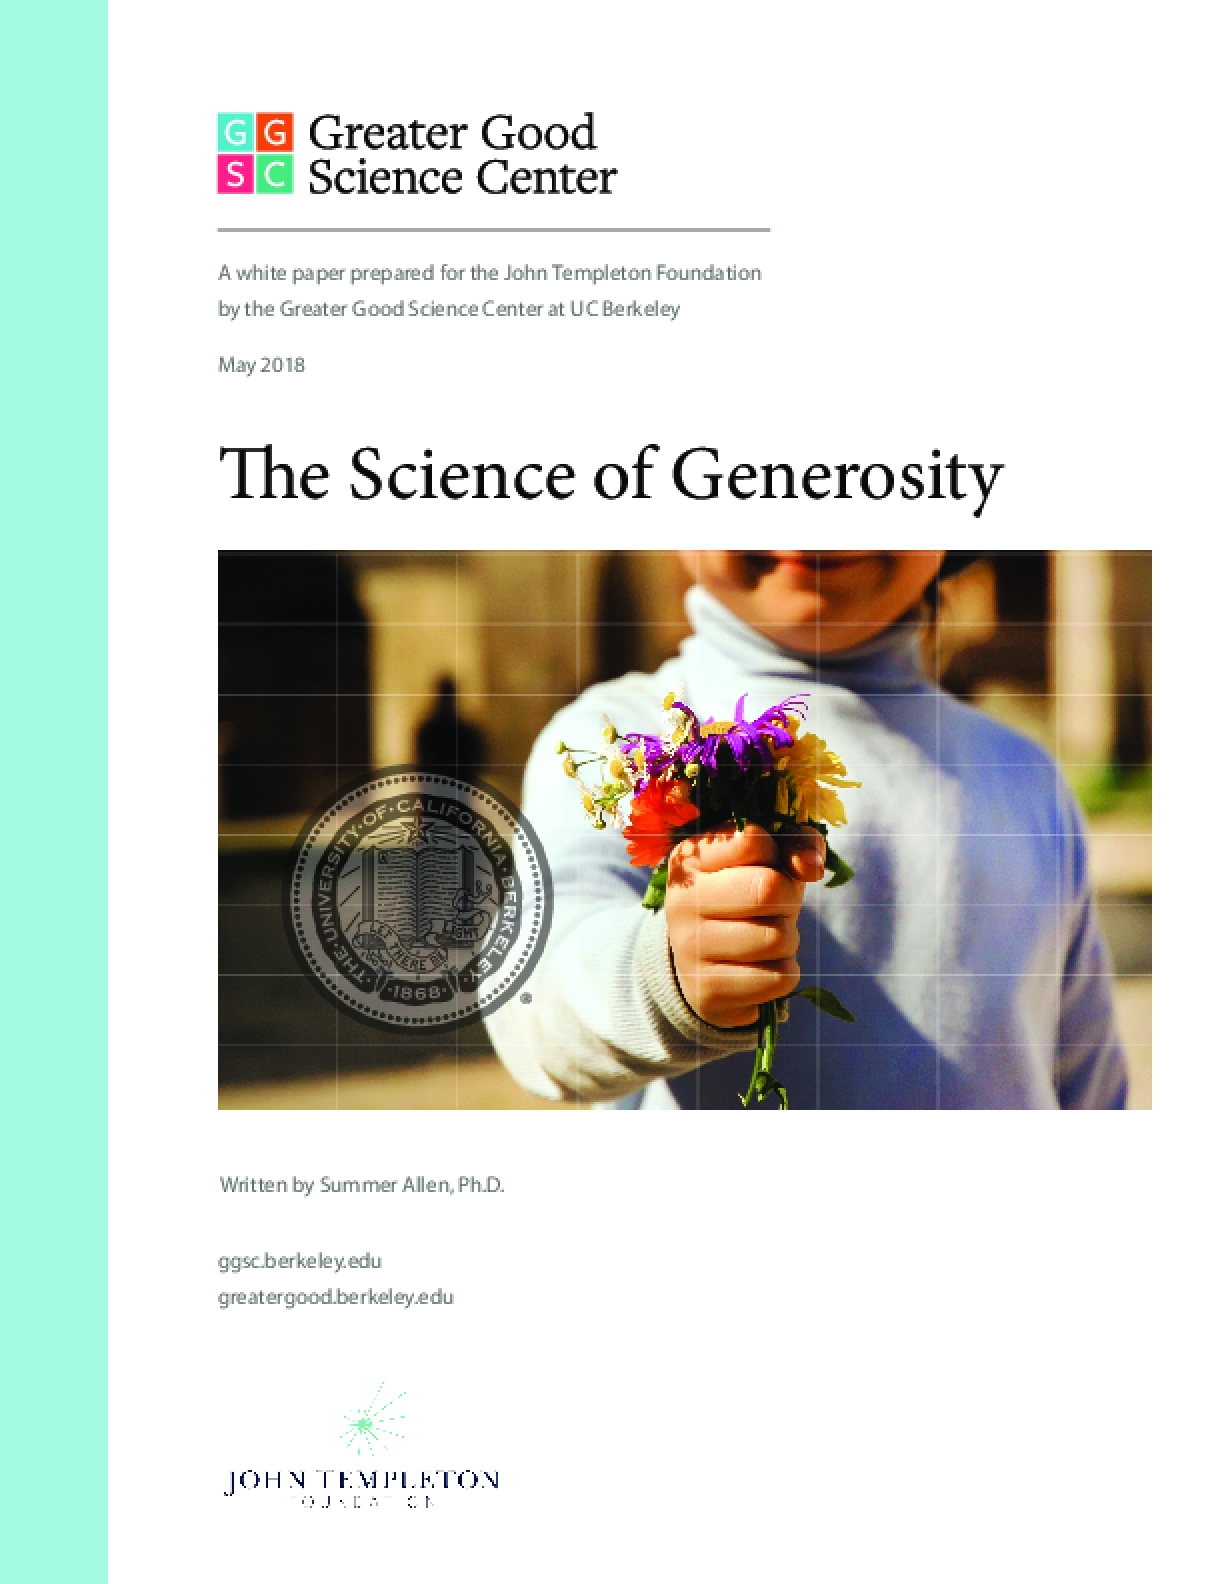 The Science of Generosity